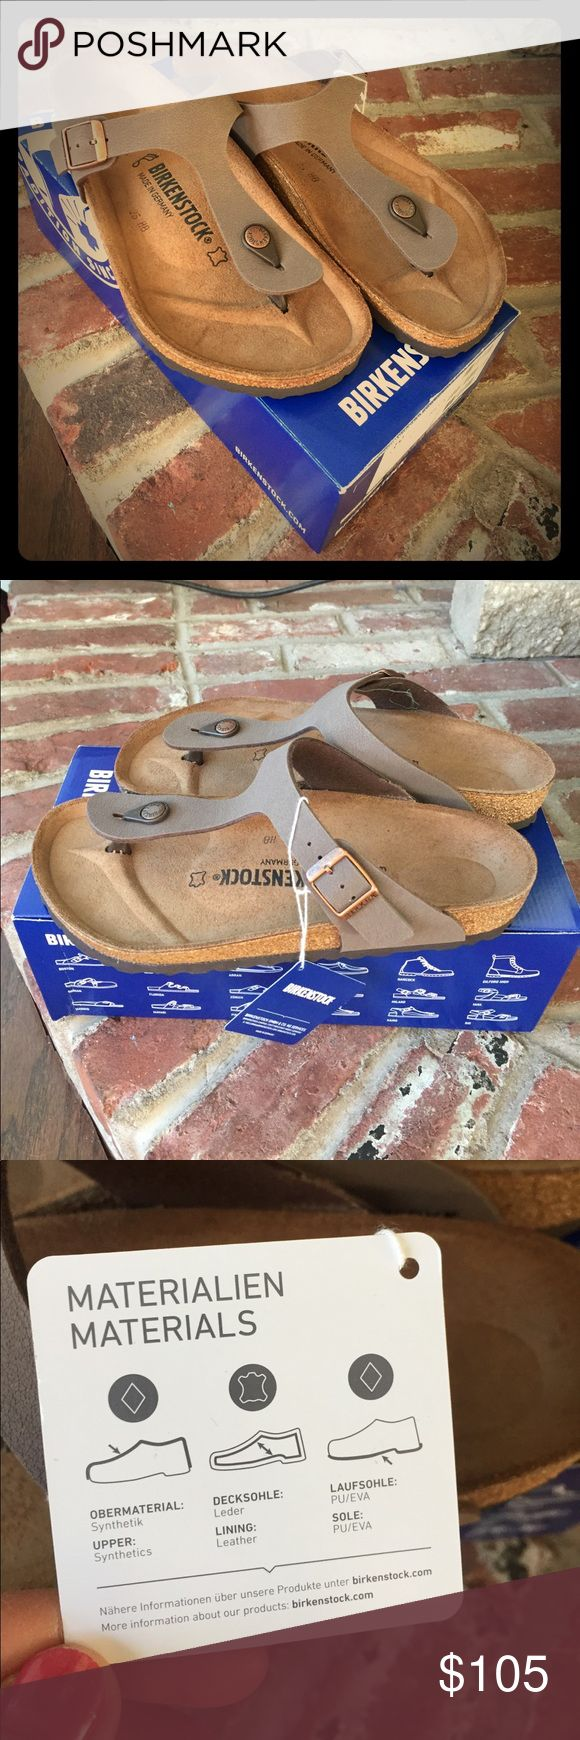 Gizeh Birkenstock slippers Brand new with original box, regular fit- original Birko floor, rare mocca color. Just purchased in Germany, don't wait make them yours today!!! Birkenstock Shoes Slippers